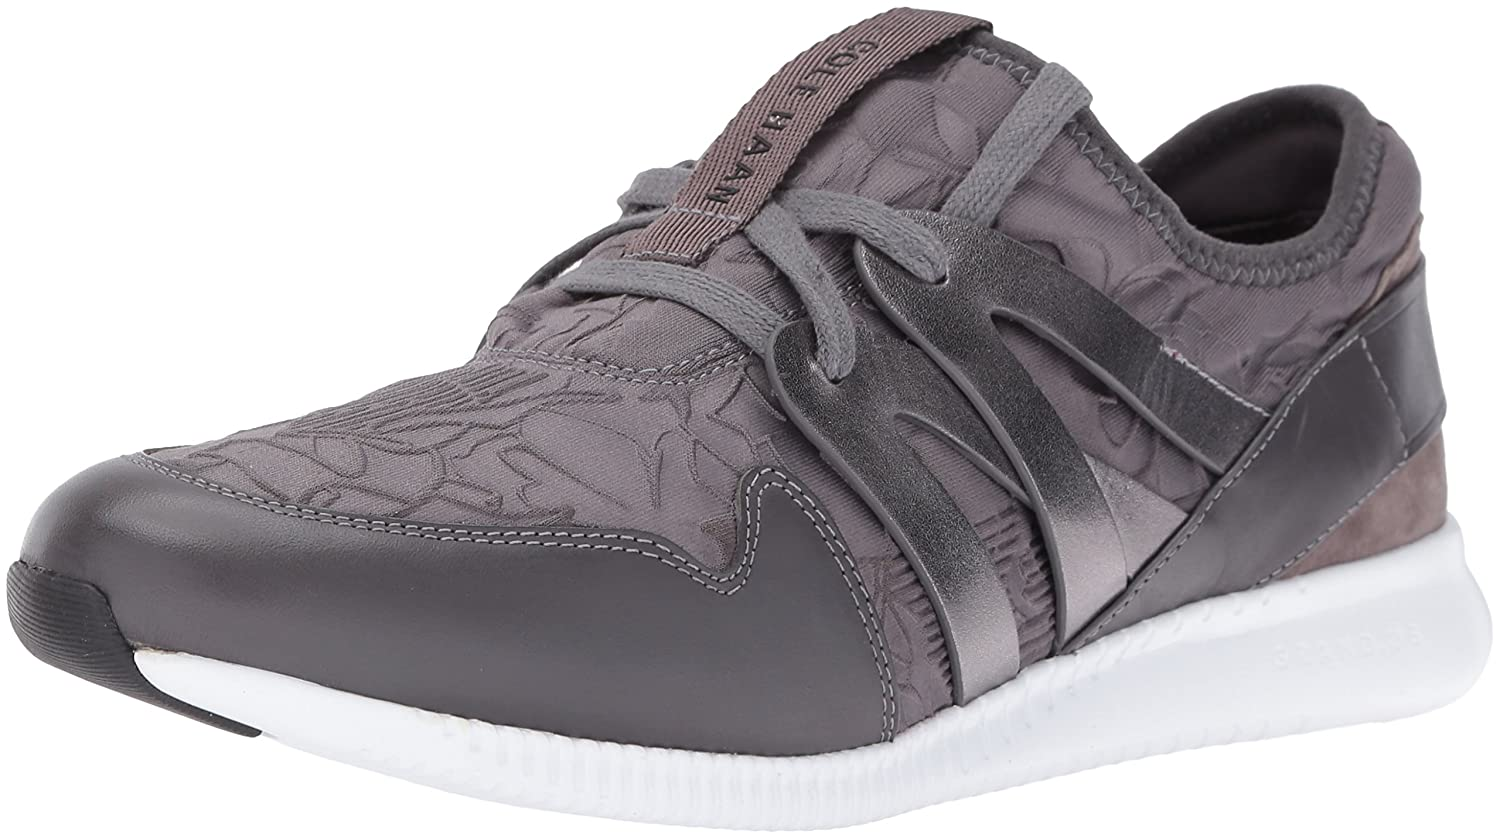 Cole Haan Women's 2.0 Studiogrand Trainer Fashion Sneaker B01ITEIZ6O 9.5 B(M) US|Pavement Embossed Floral Neoprene/Leather/Optic White